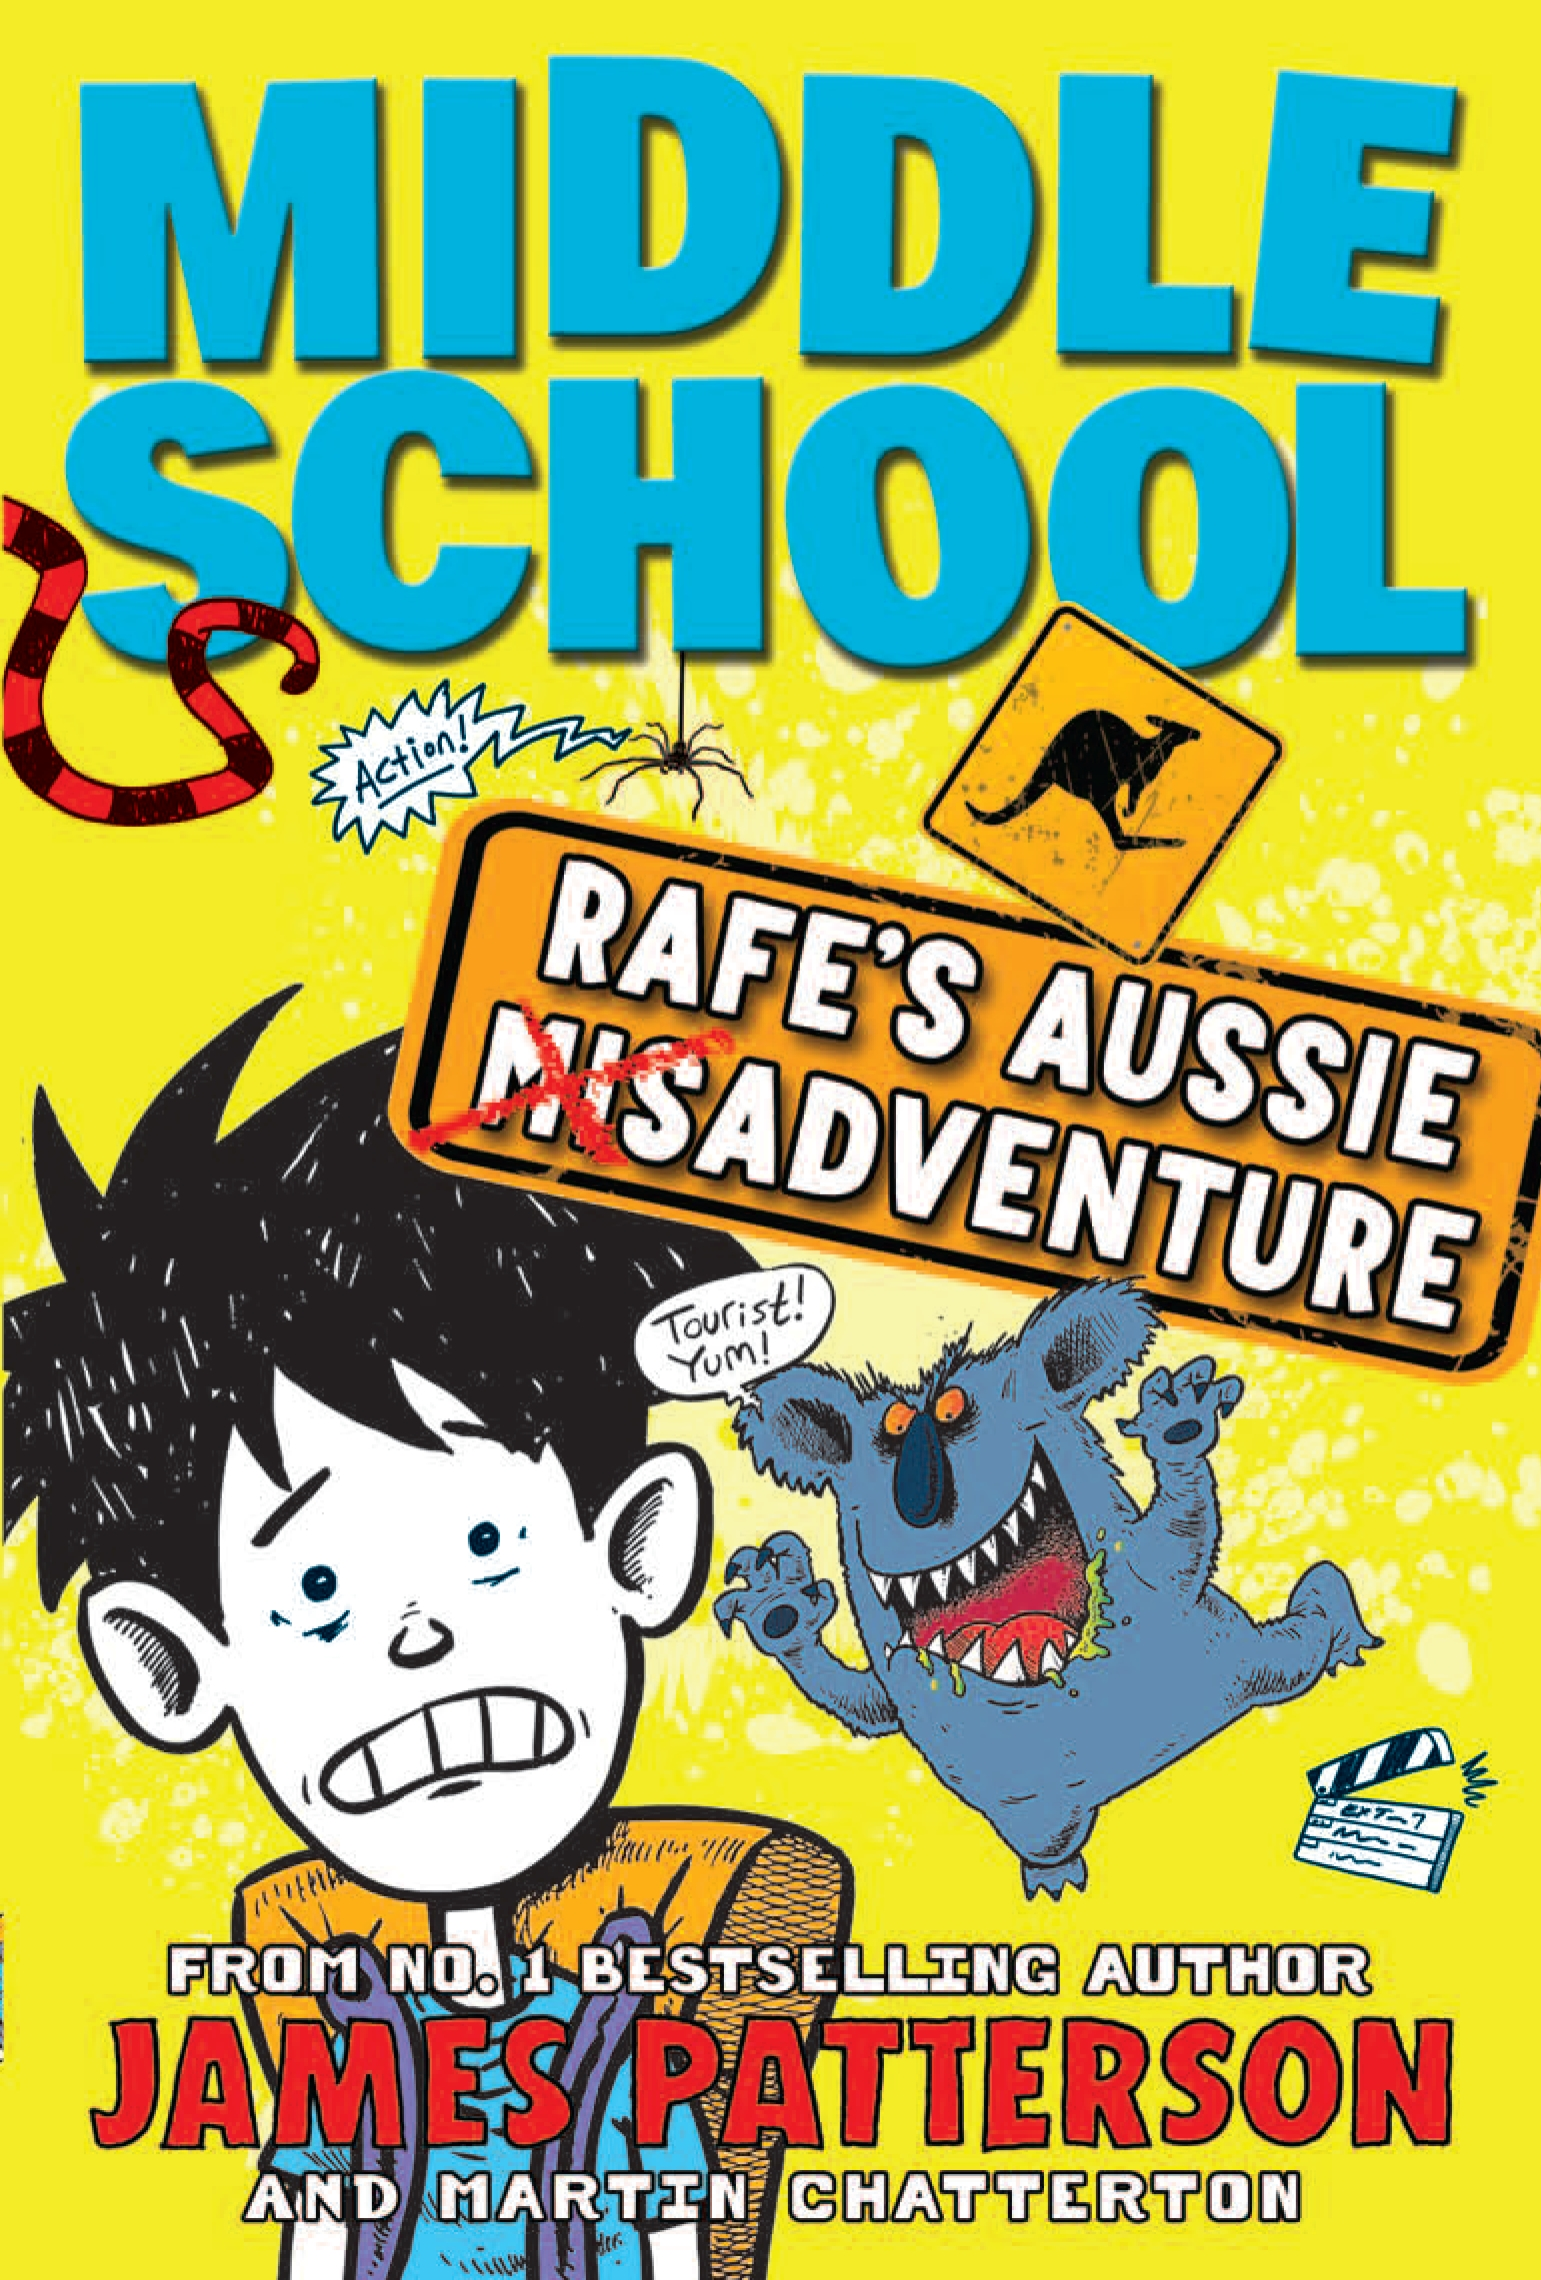 School Book Cover Images : Middle school rafe s aussie adventure by james patterson